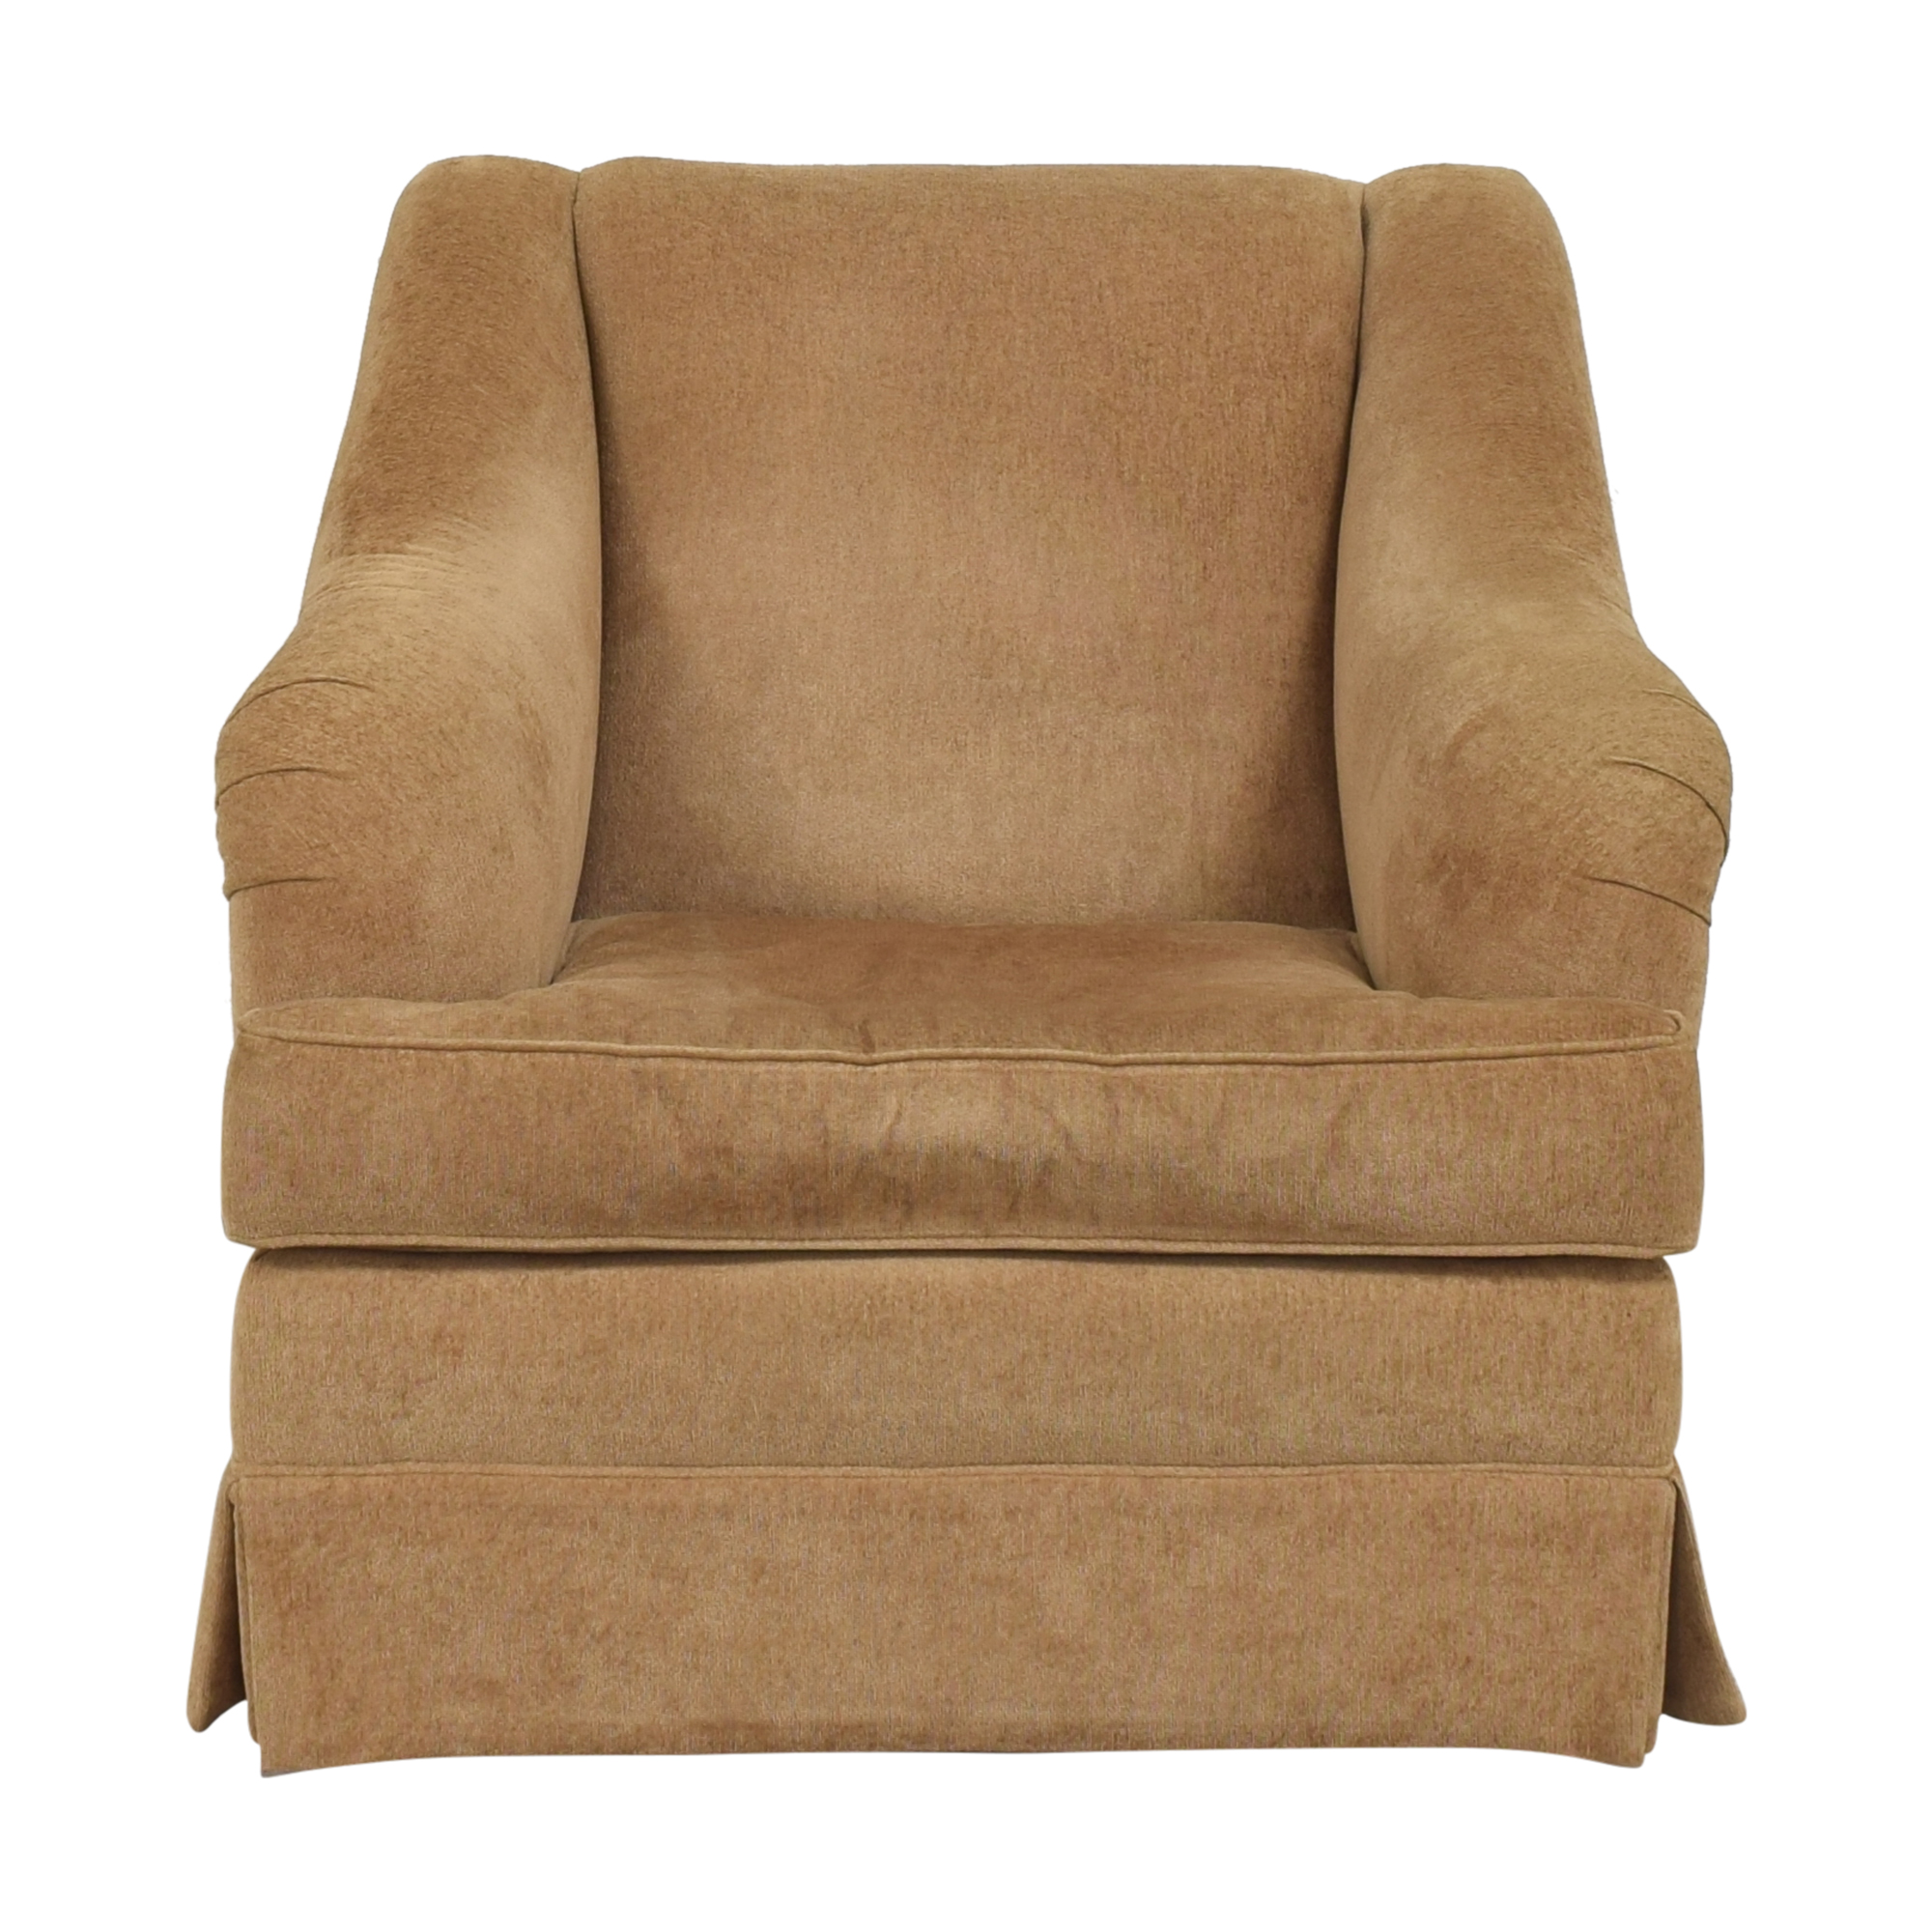 Pearson Pearson Skirted Accent Chair for sale